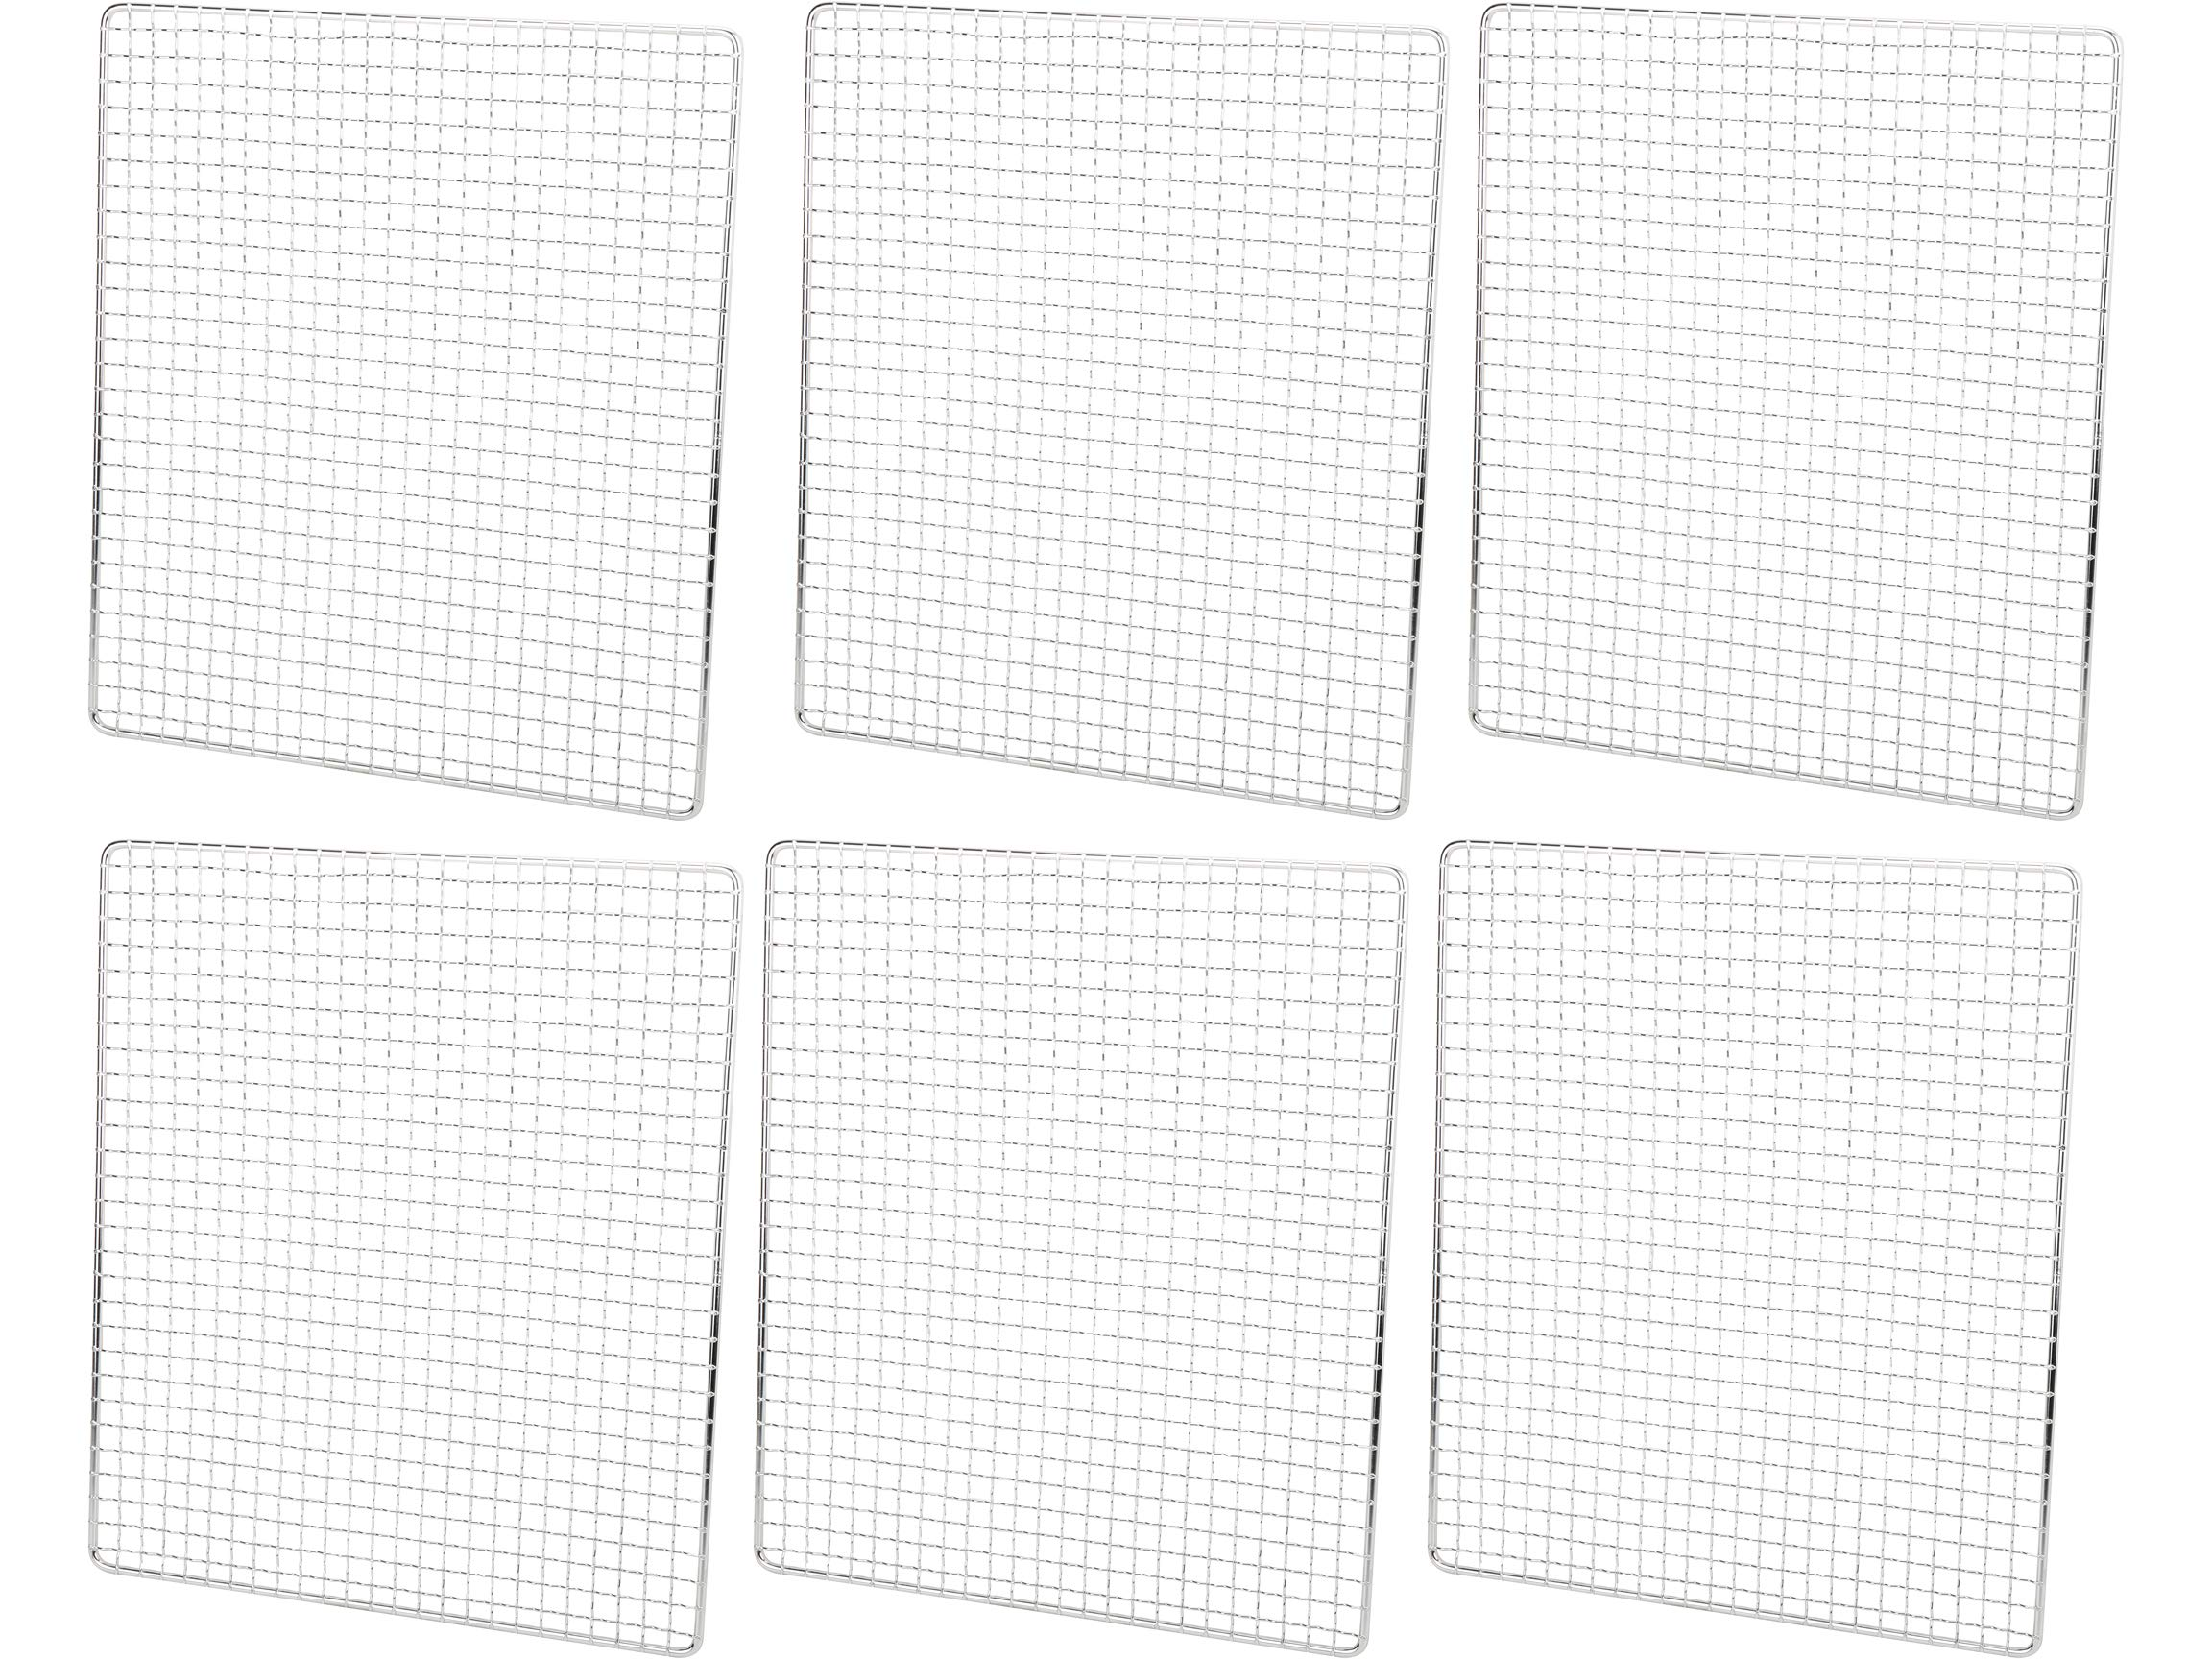 Rosewill Stainless Steel Racks for Rhfd-18001 Food Dehydrator, 6 Pieces, RHFD-18001ACC by Rosewill